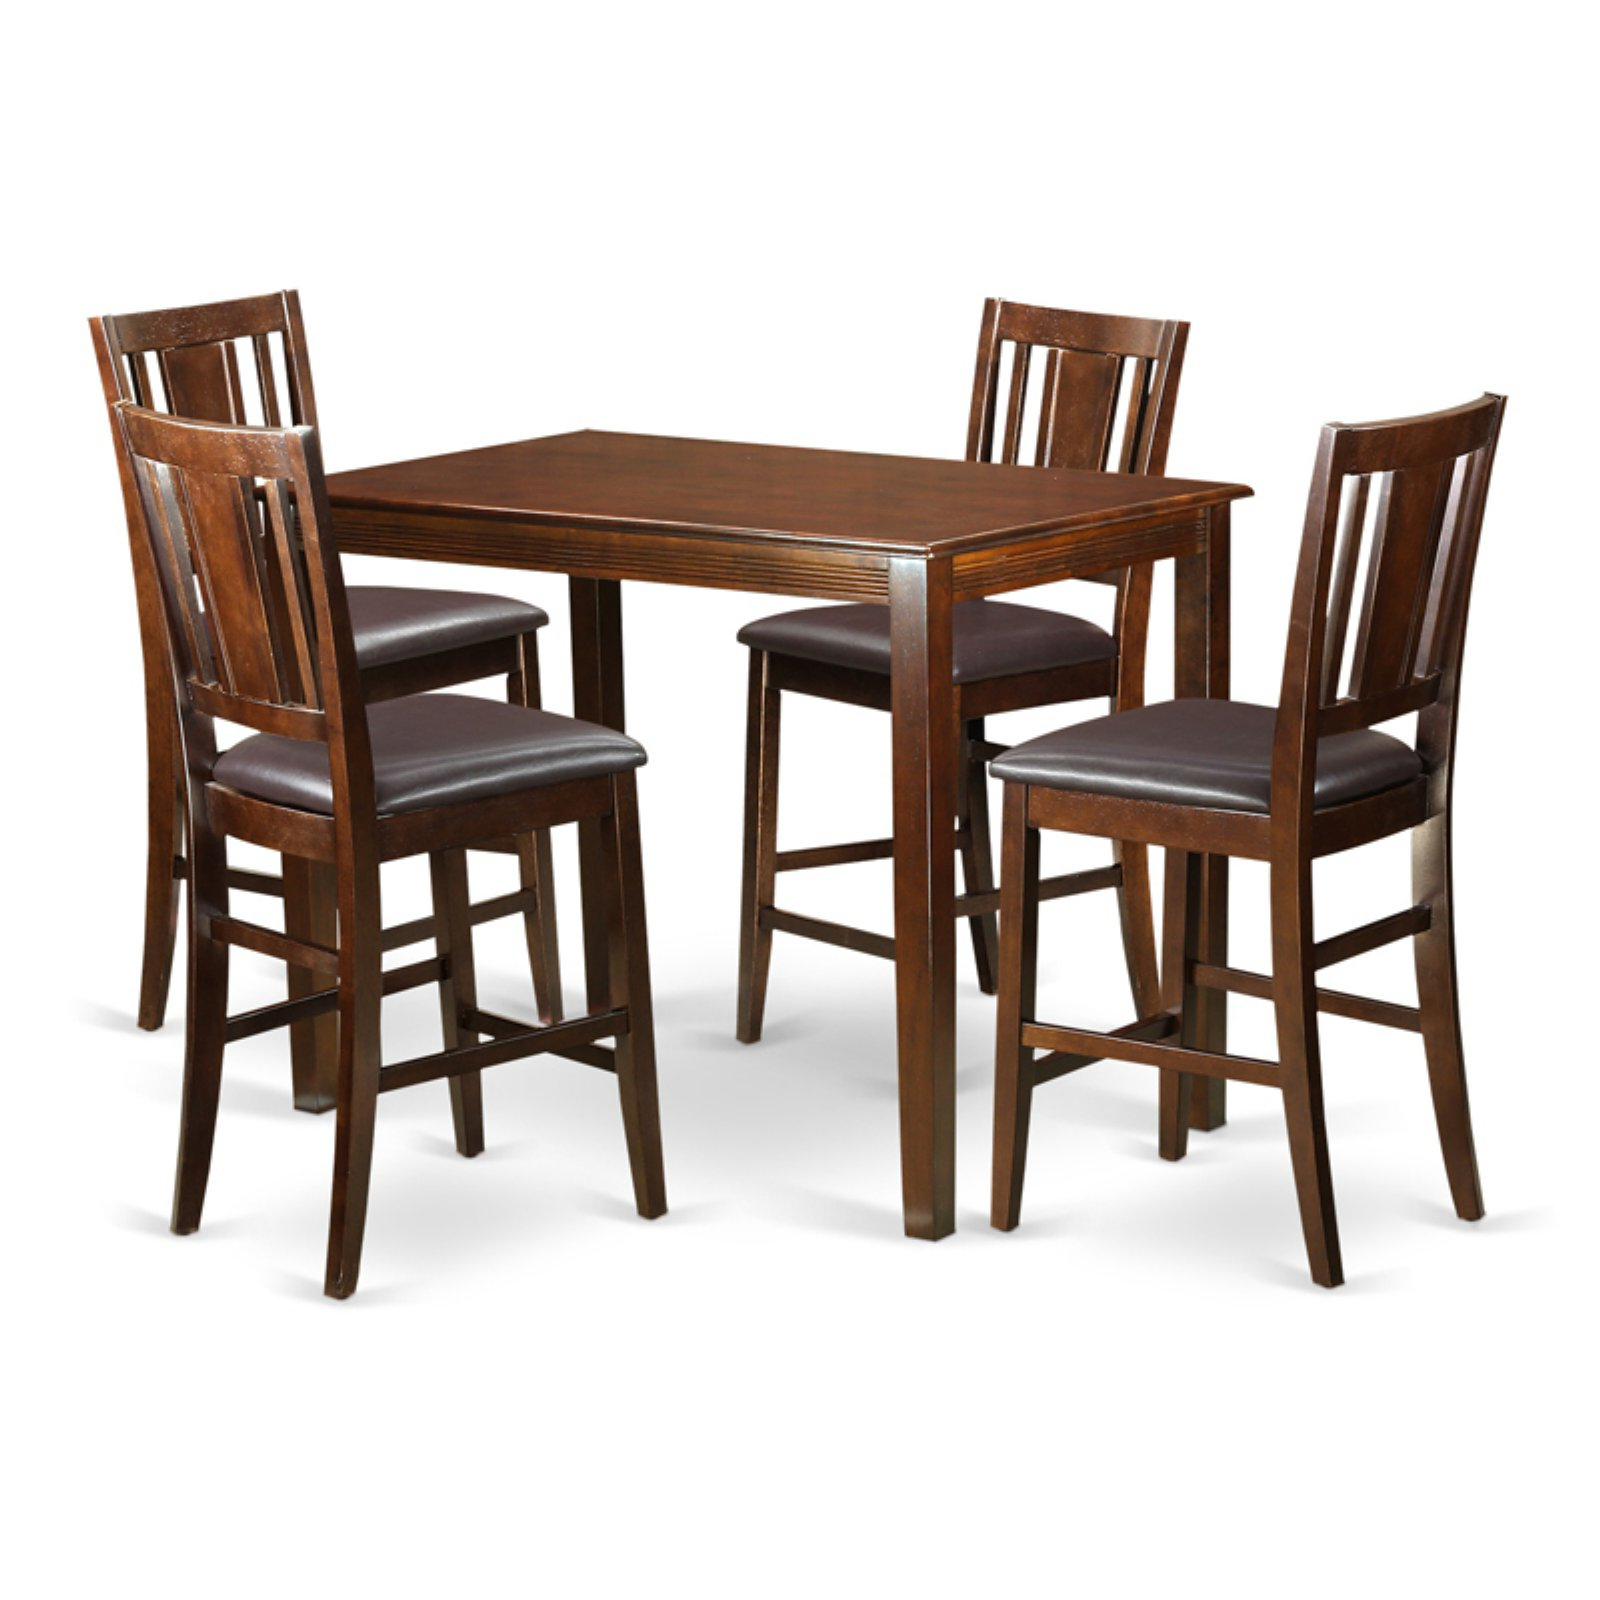 Sundberg 5 Piece Solid Wood Dining Sets Inside Most Current East West Furniture Yarmouth 5 Piece Scotch Art Dining Table Set (View 12 of 20)